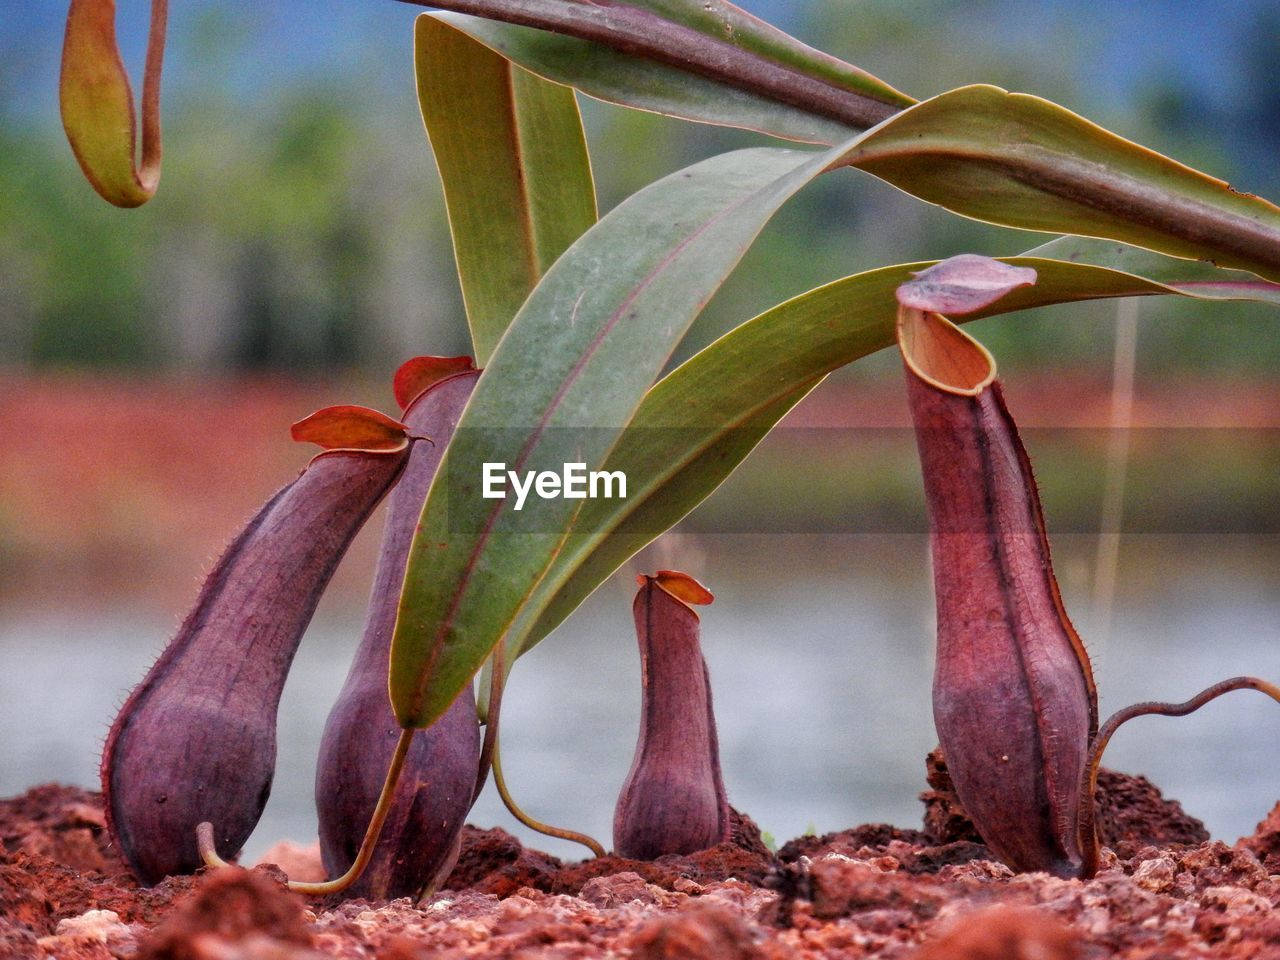 Close-Up Of Pitcher Plants Growing Outdoors